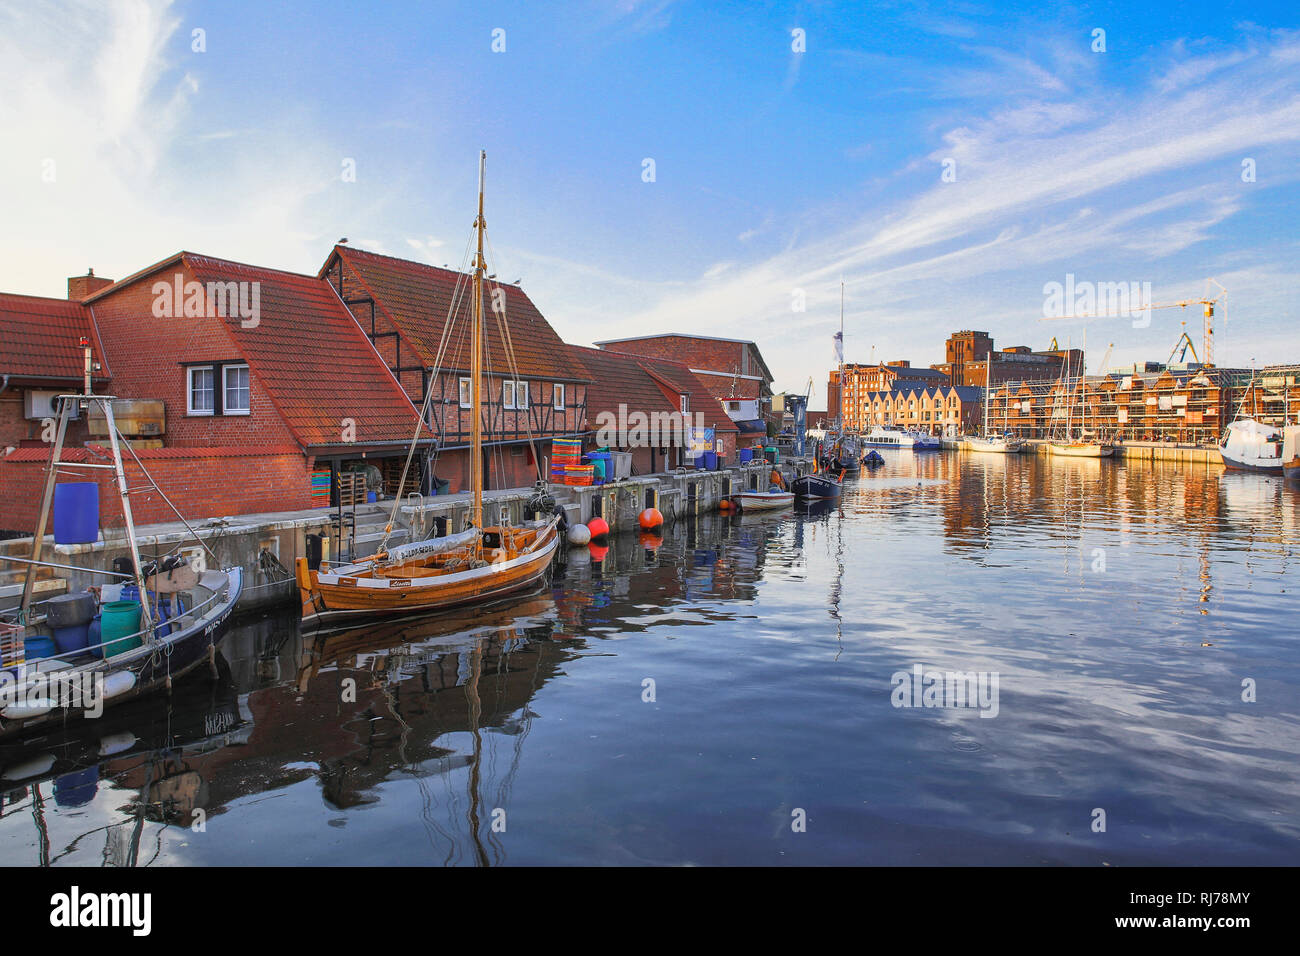 Hafen in Wismar - Stock Image